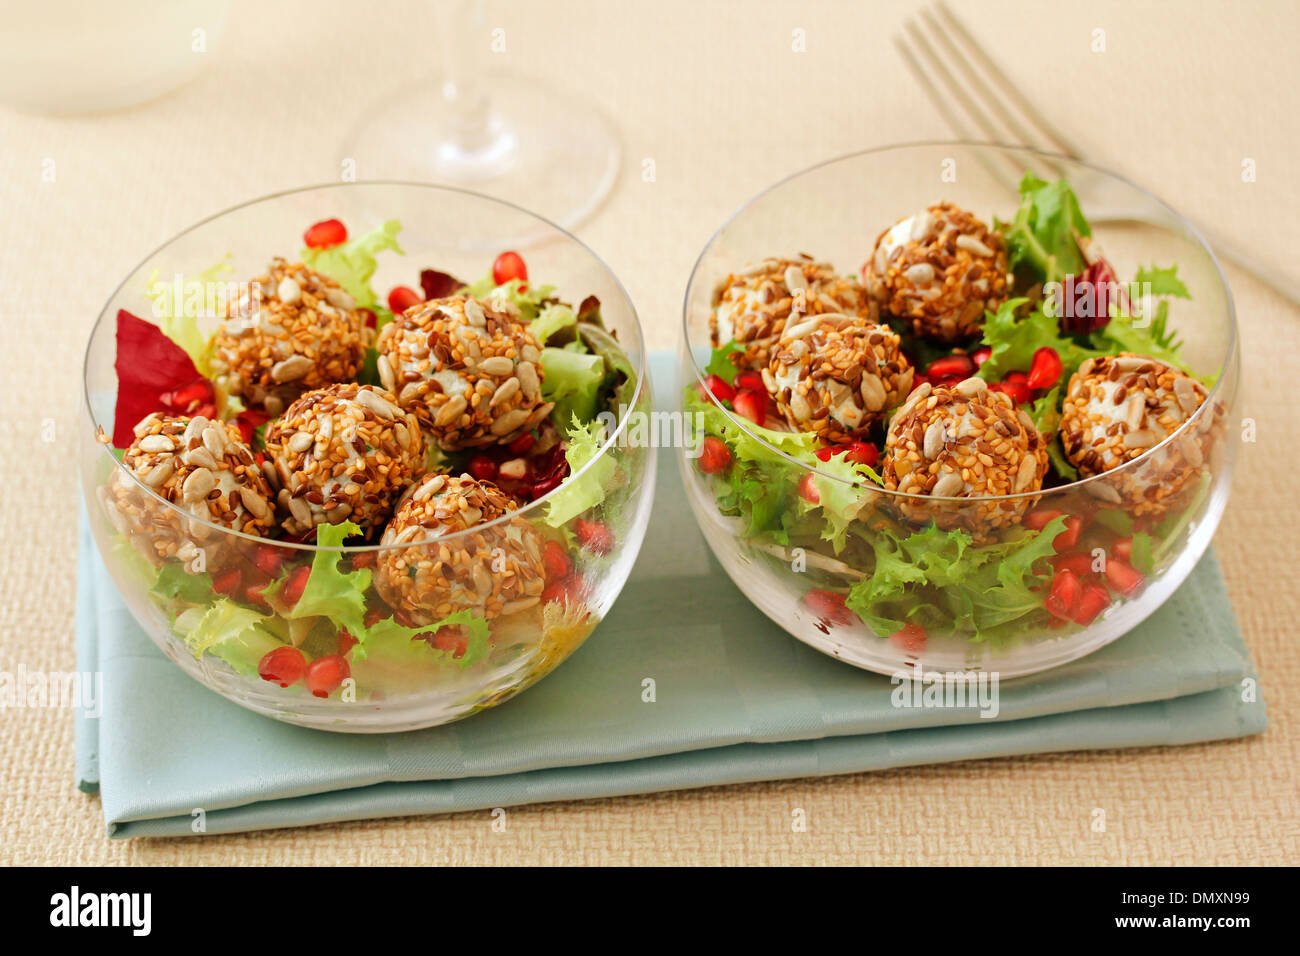 Salad with cheese balls and seeds. Recipe available. - Stock Image